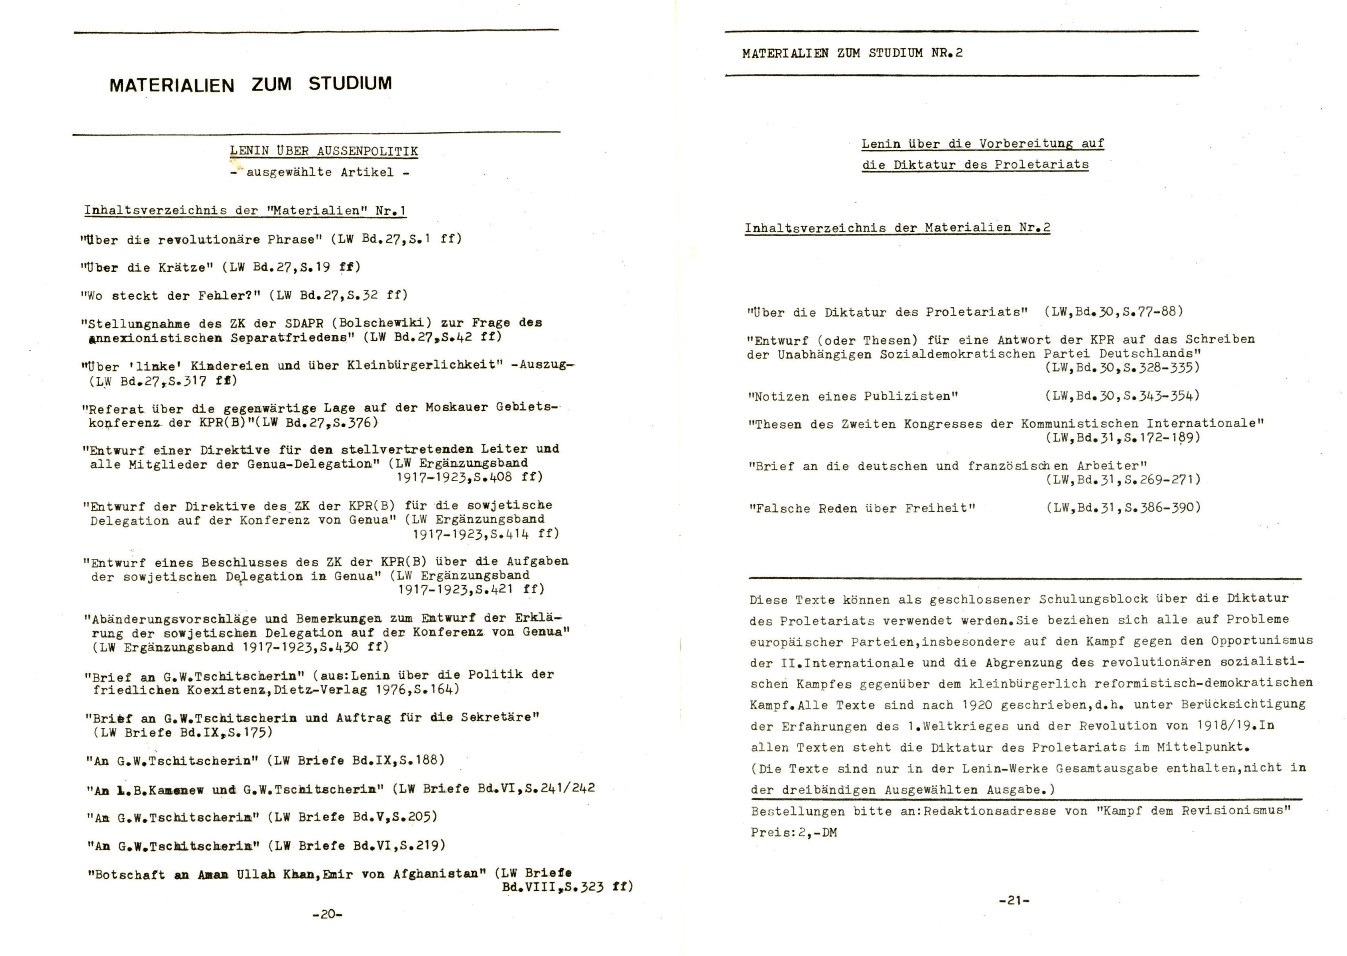 Muenchen_Kampf_dem_Revisionismus_1978_06_11